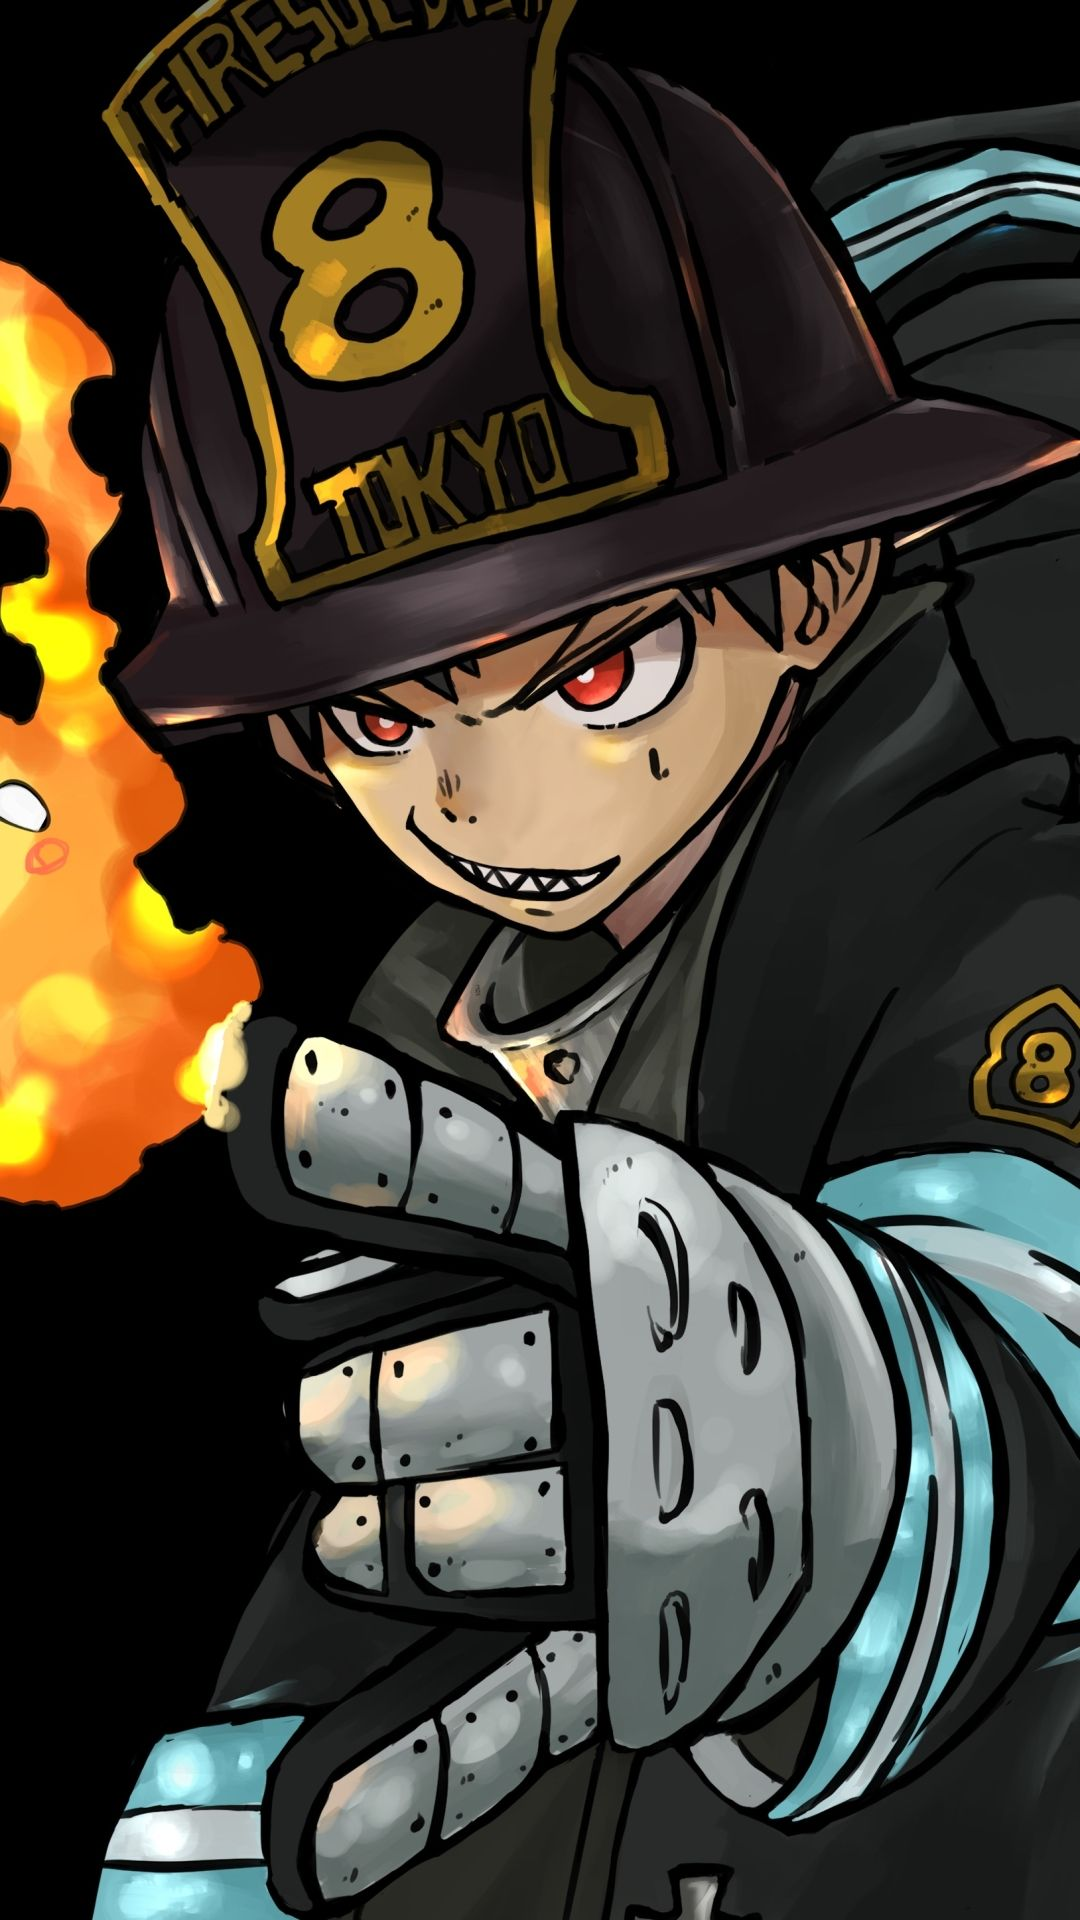 Fire Force (Enen no Shouboutai) is anime premiered on